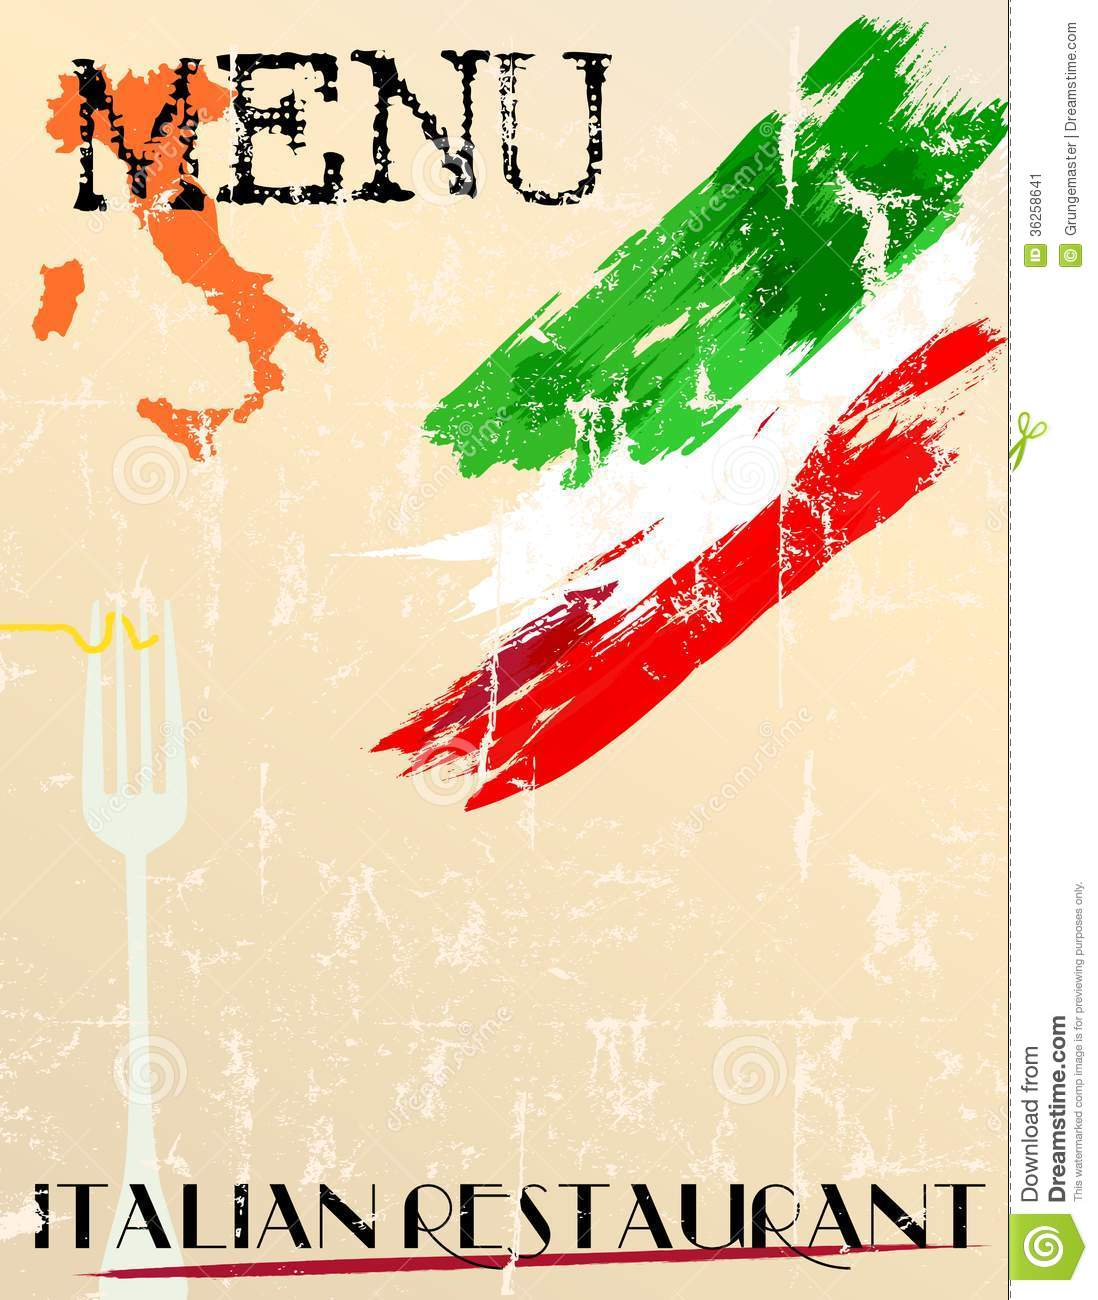 restaurant menu design stock vector. illustration of food - 36258641